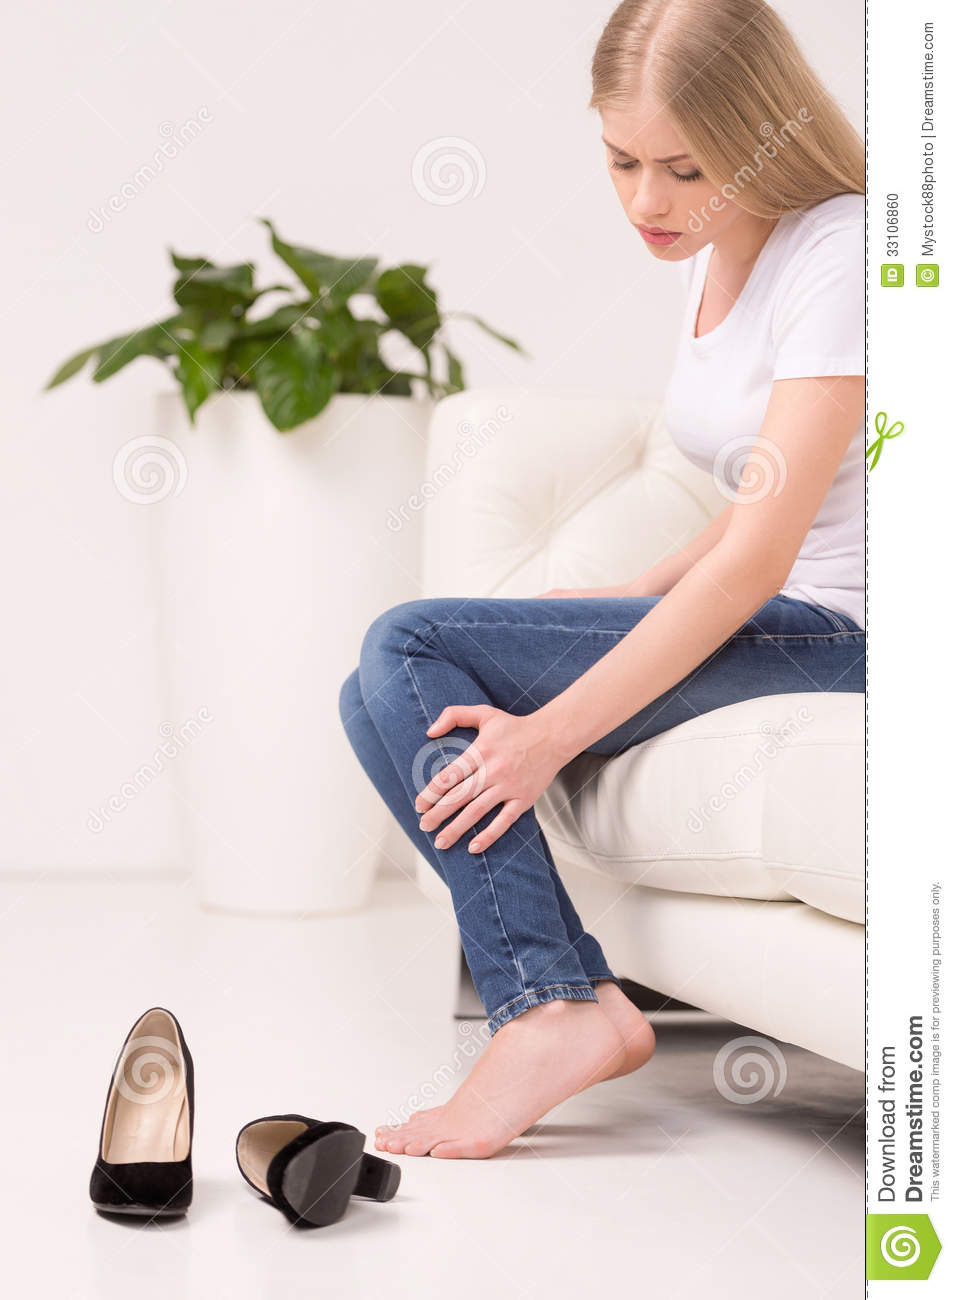 Tired Woman. Stock Photo - Image: 33106860